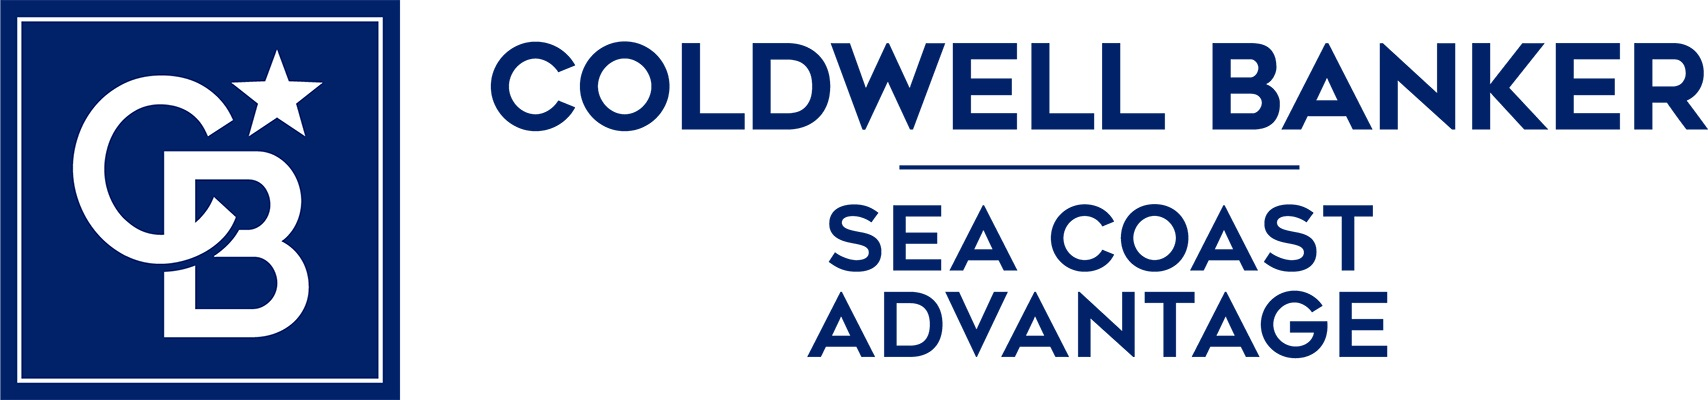 Margaret Bowen - Coldwell Banker Sea Coast Advantage Realty Logo